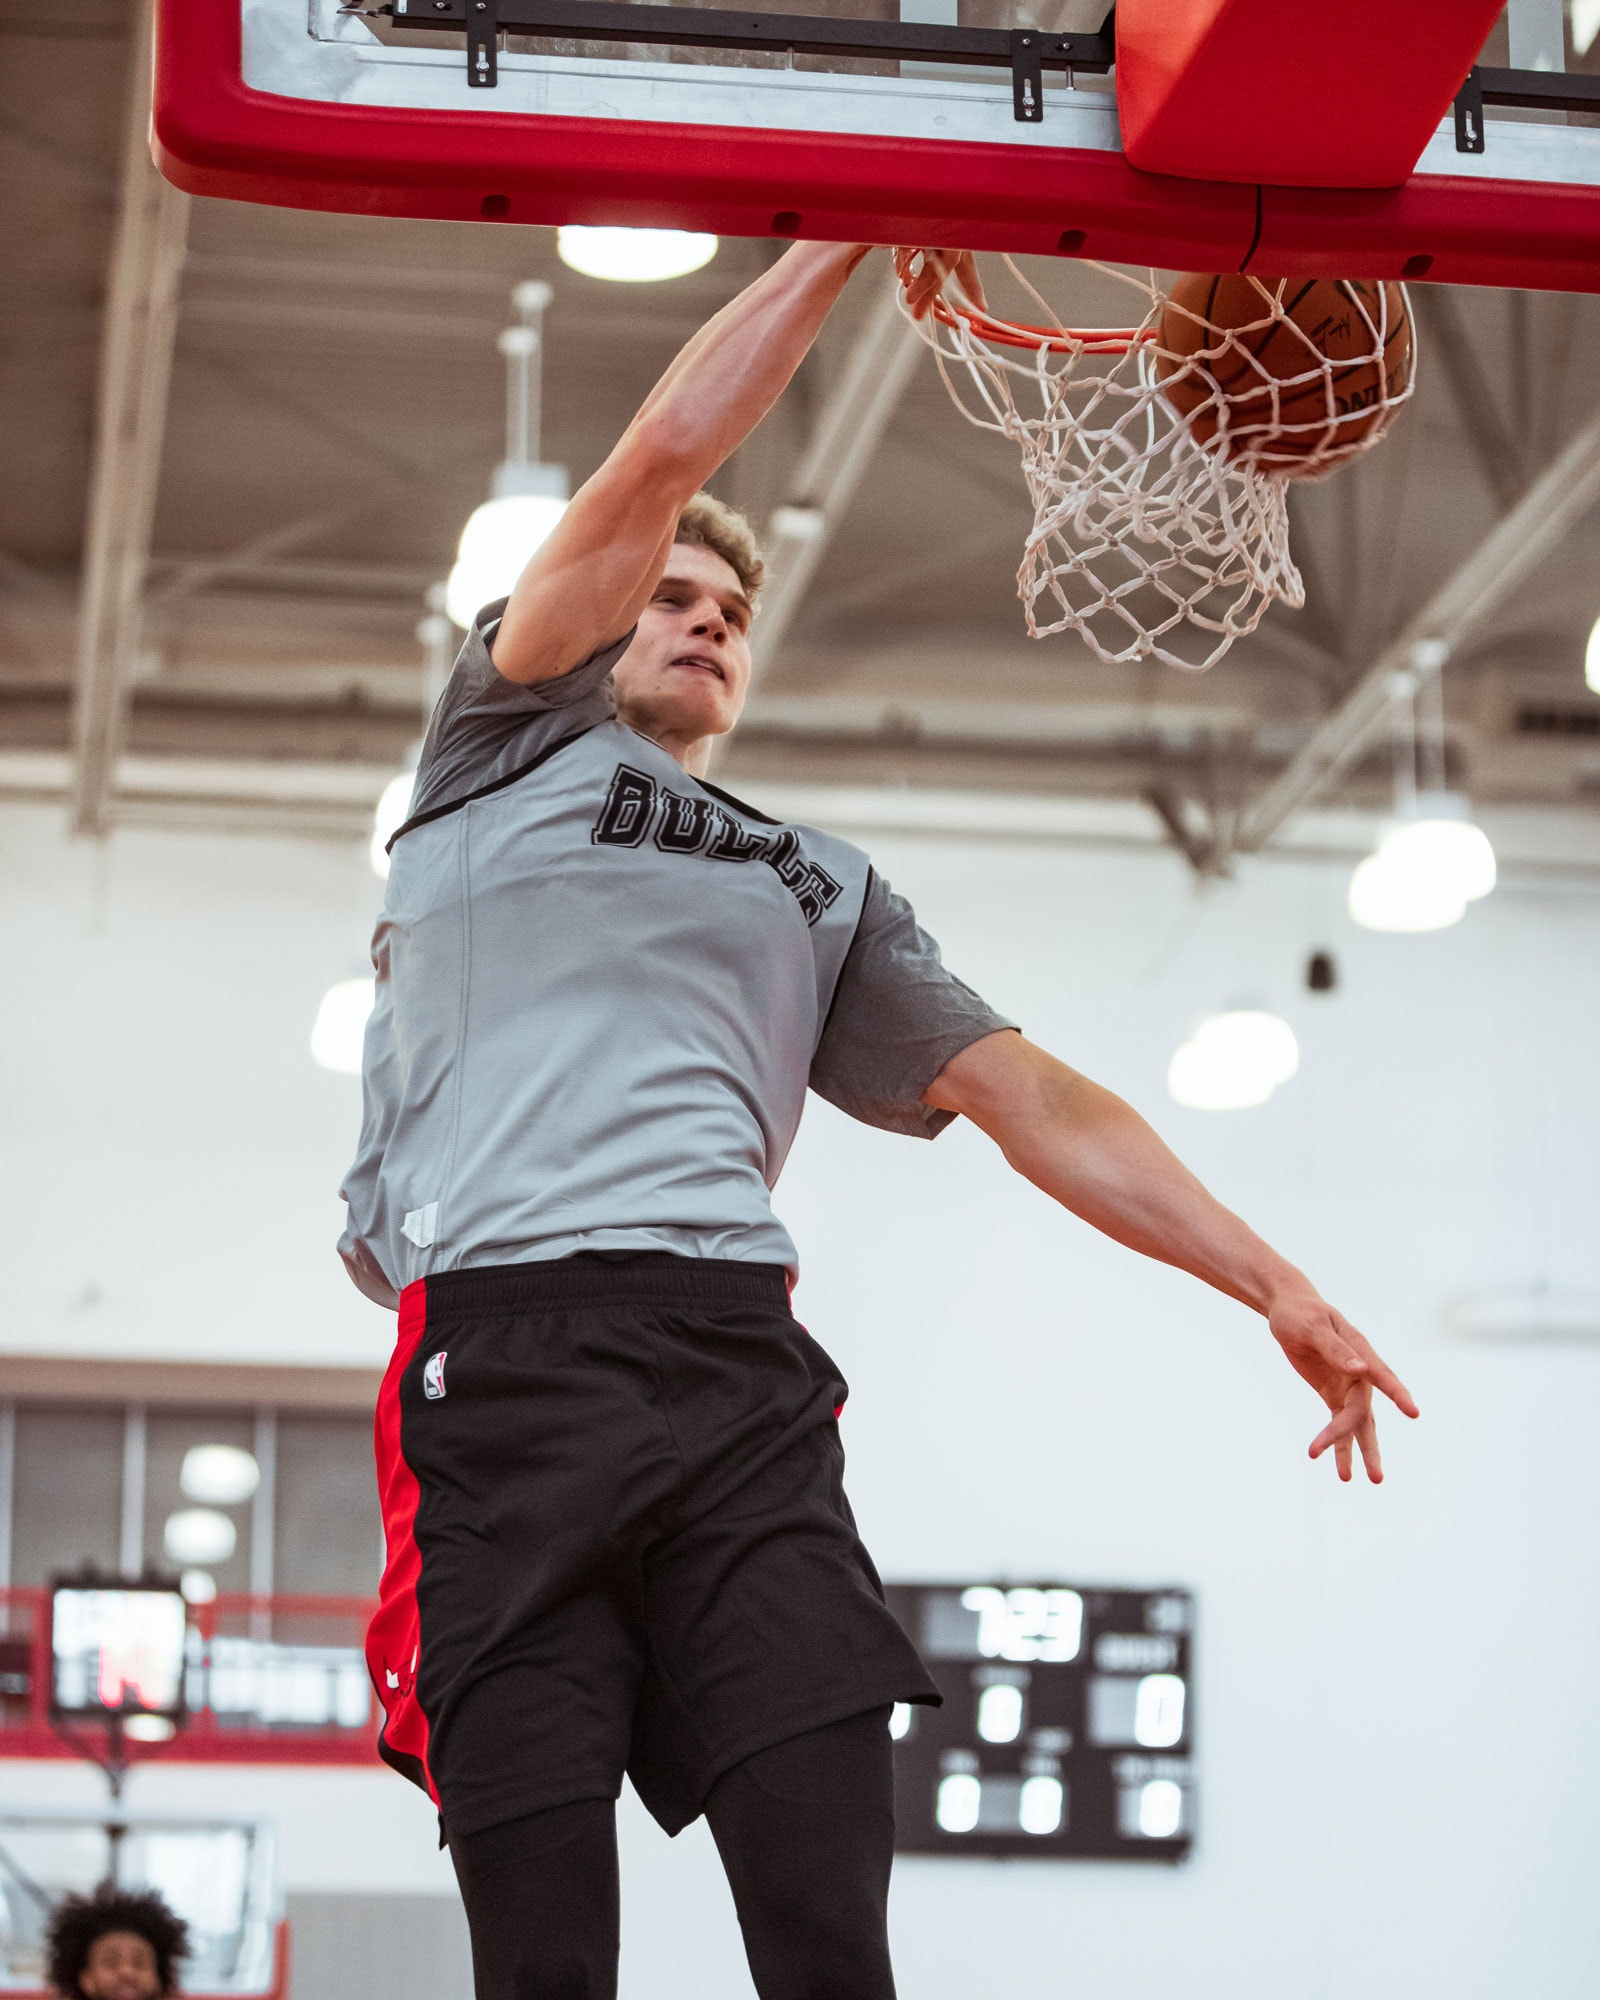 Lauri dunks the ball during Training Camp